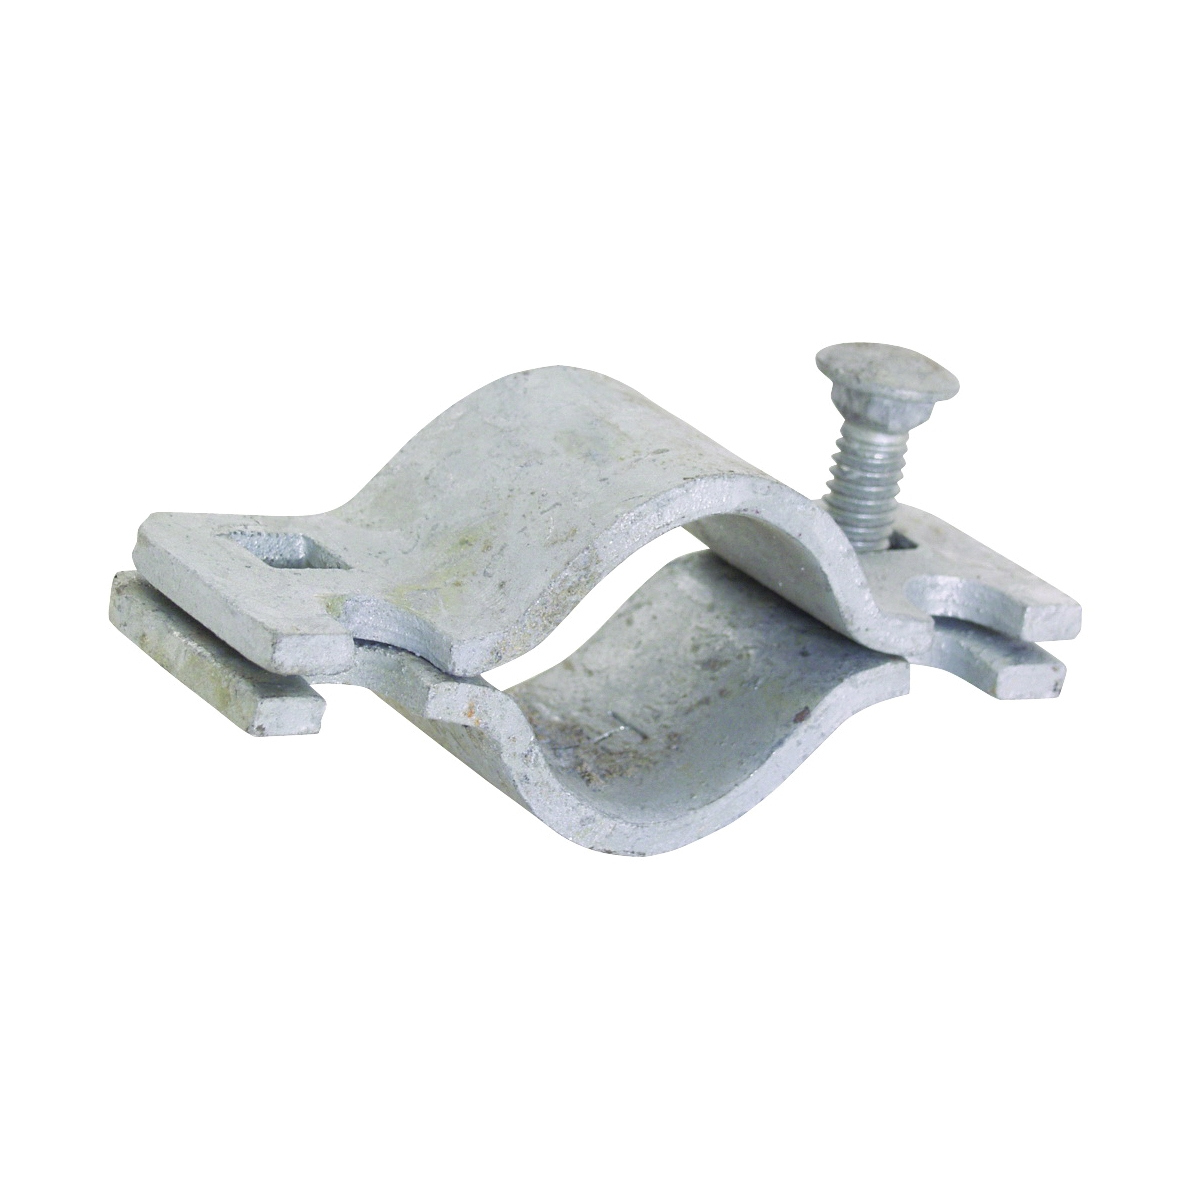 Picture of Stephens Pipe & Steel HD23141RP Fork Latch